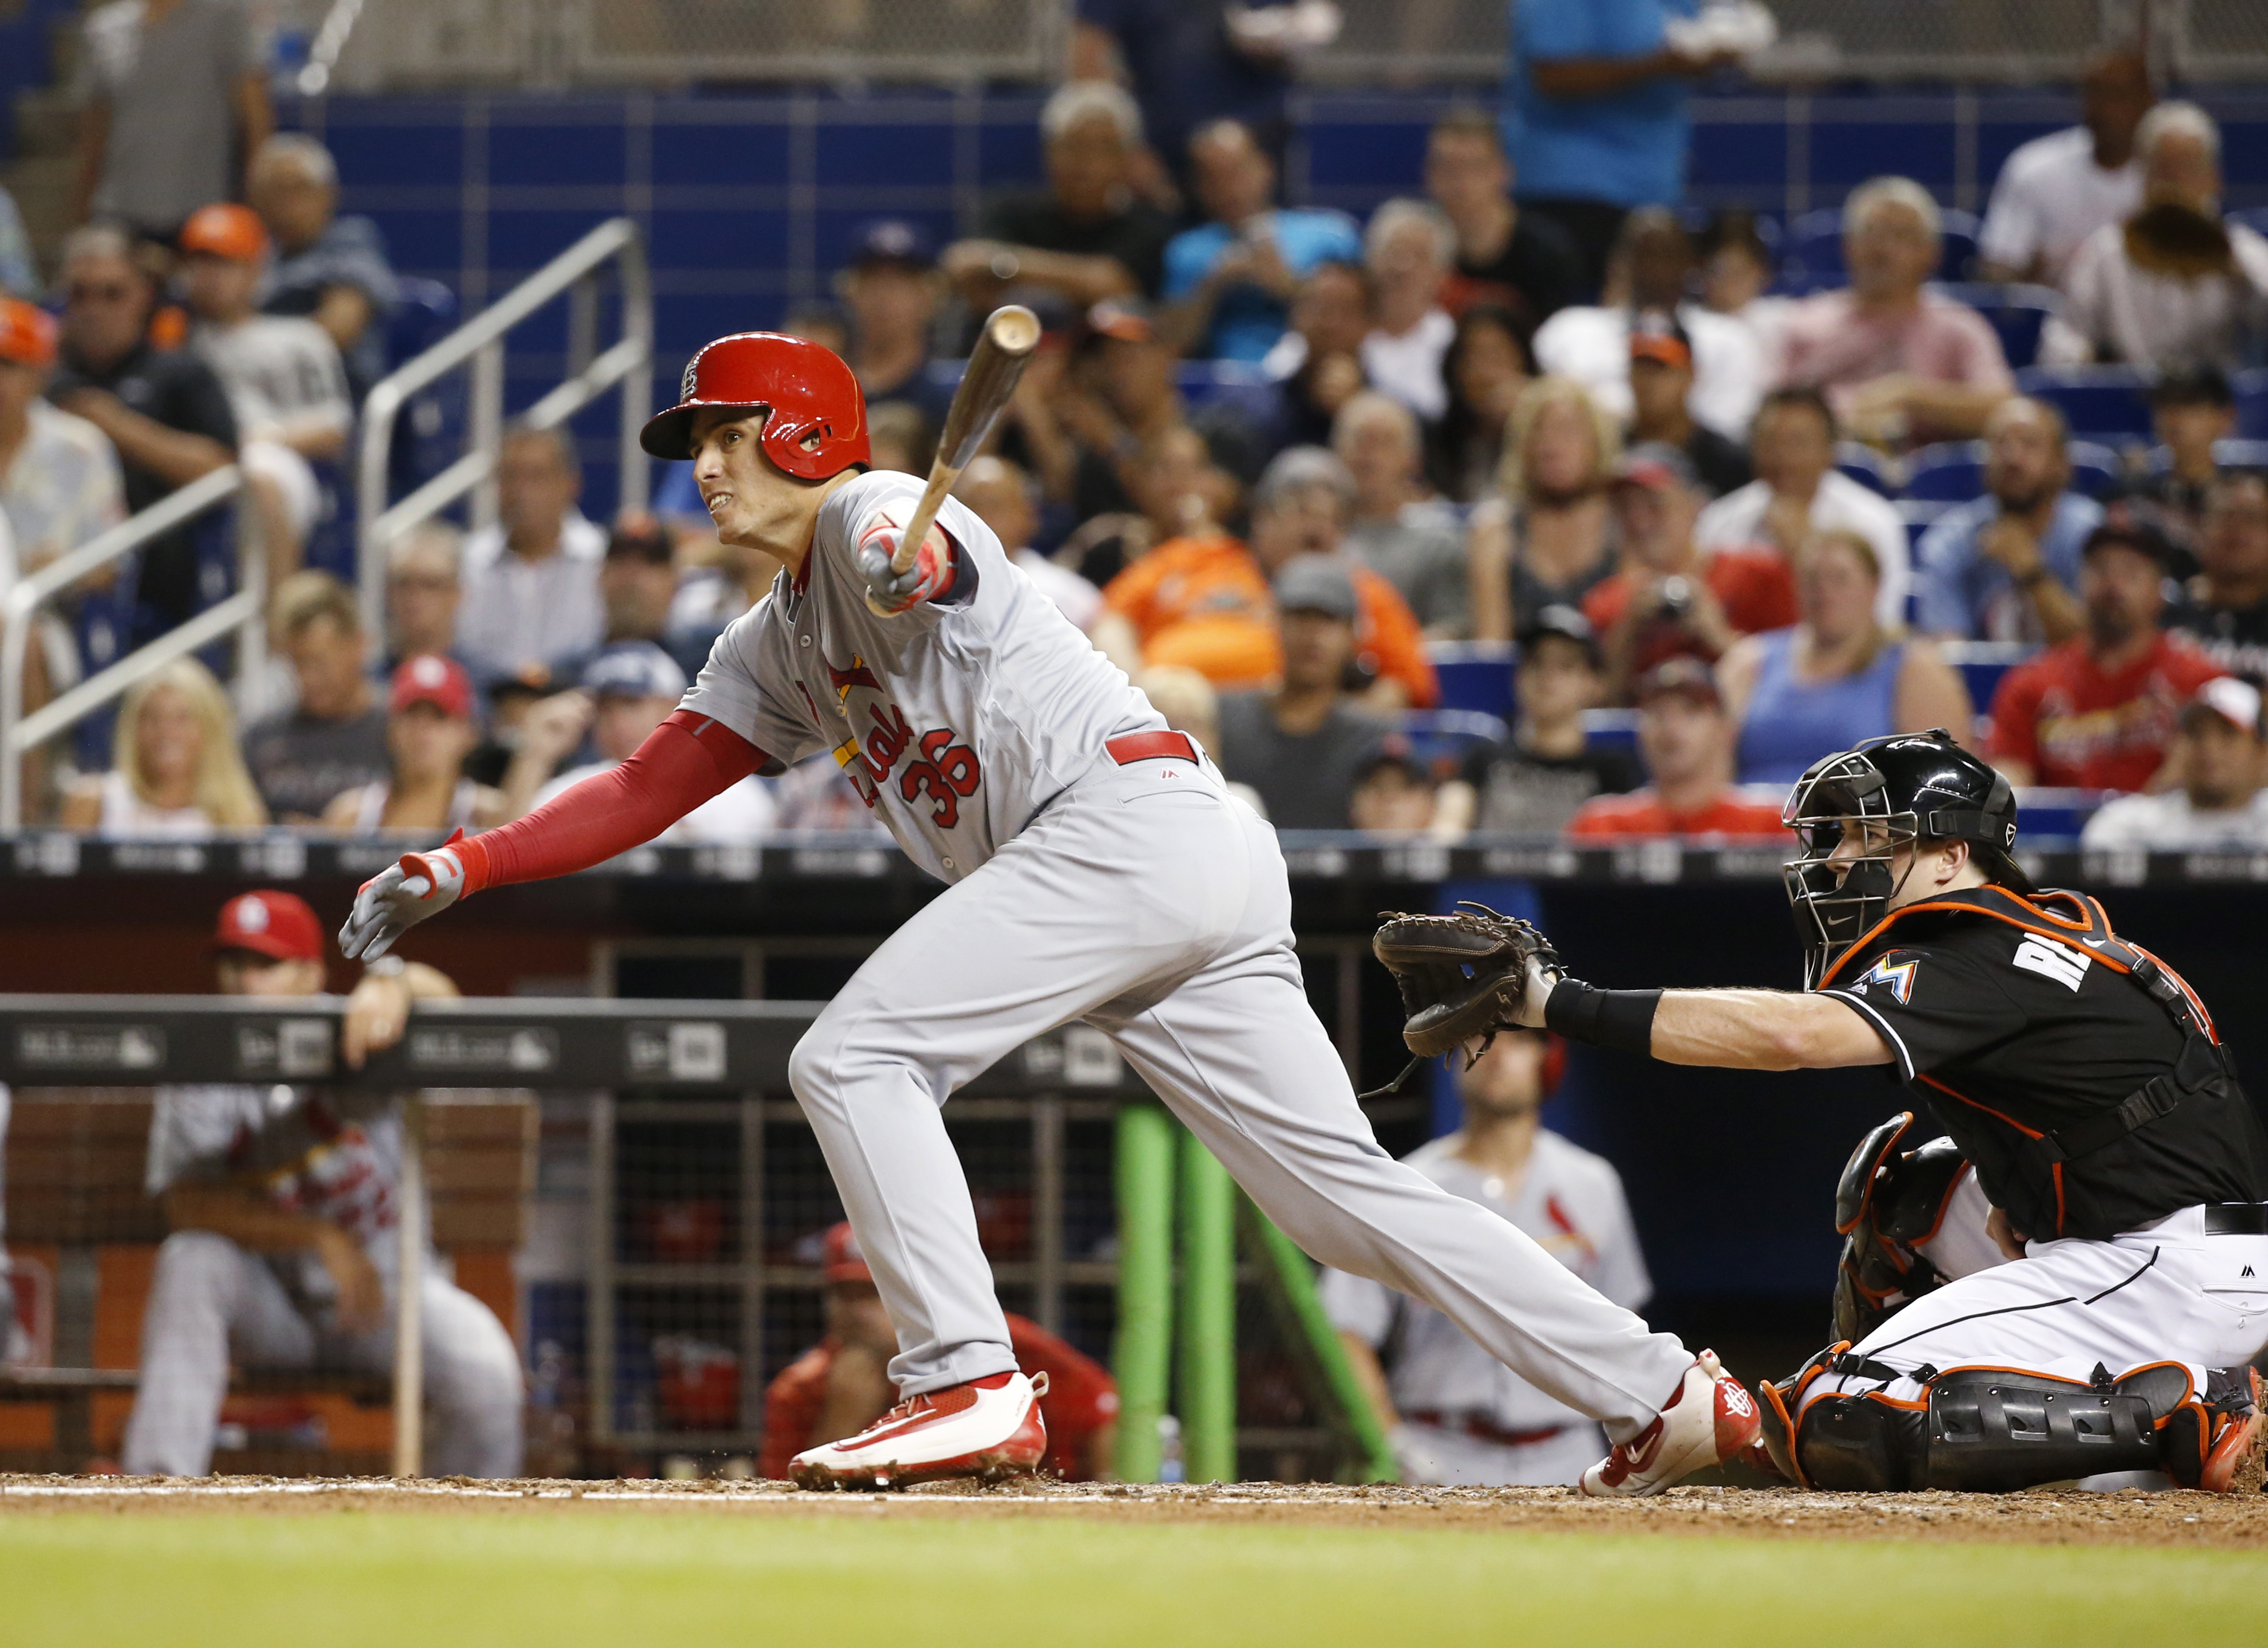 St. Louis Cardinals' Aledmys Diaz watches his RBI double during the fifth inning of a baseball game against the Miami Marlins, Thursday, July 28, 2016, in Miami. (AP Photo/Wilfredo Lee)